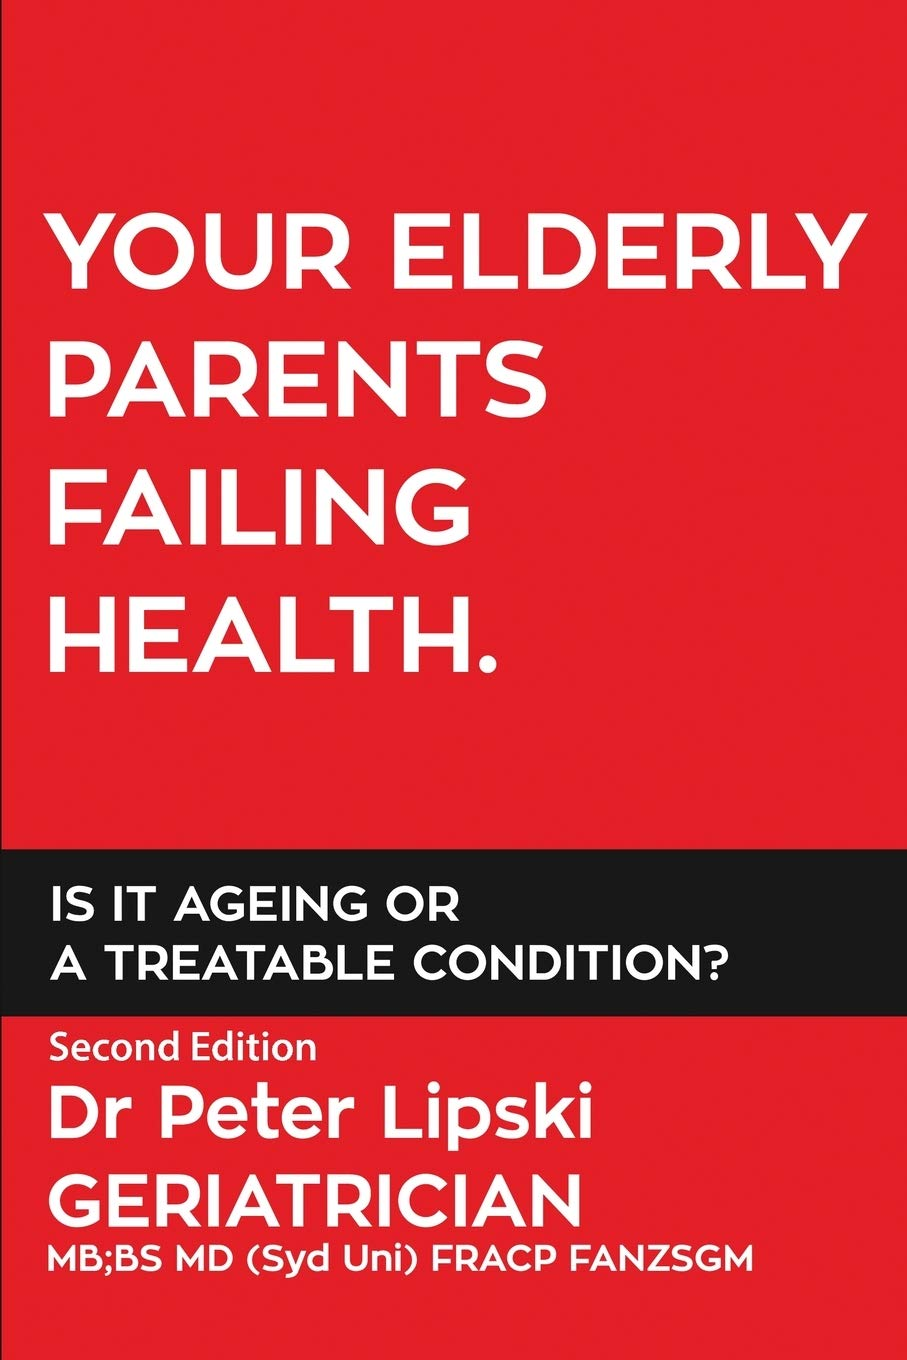 Your Elderly Parents Failing Health